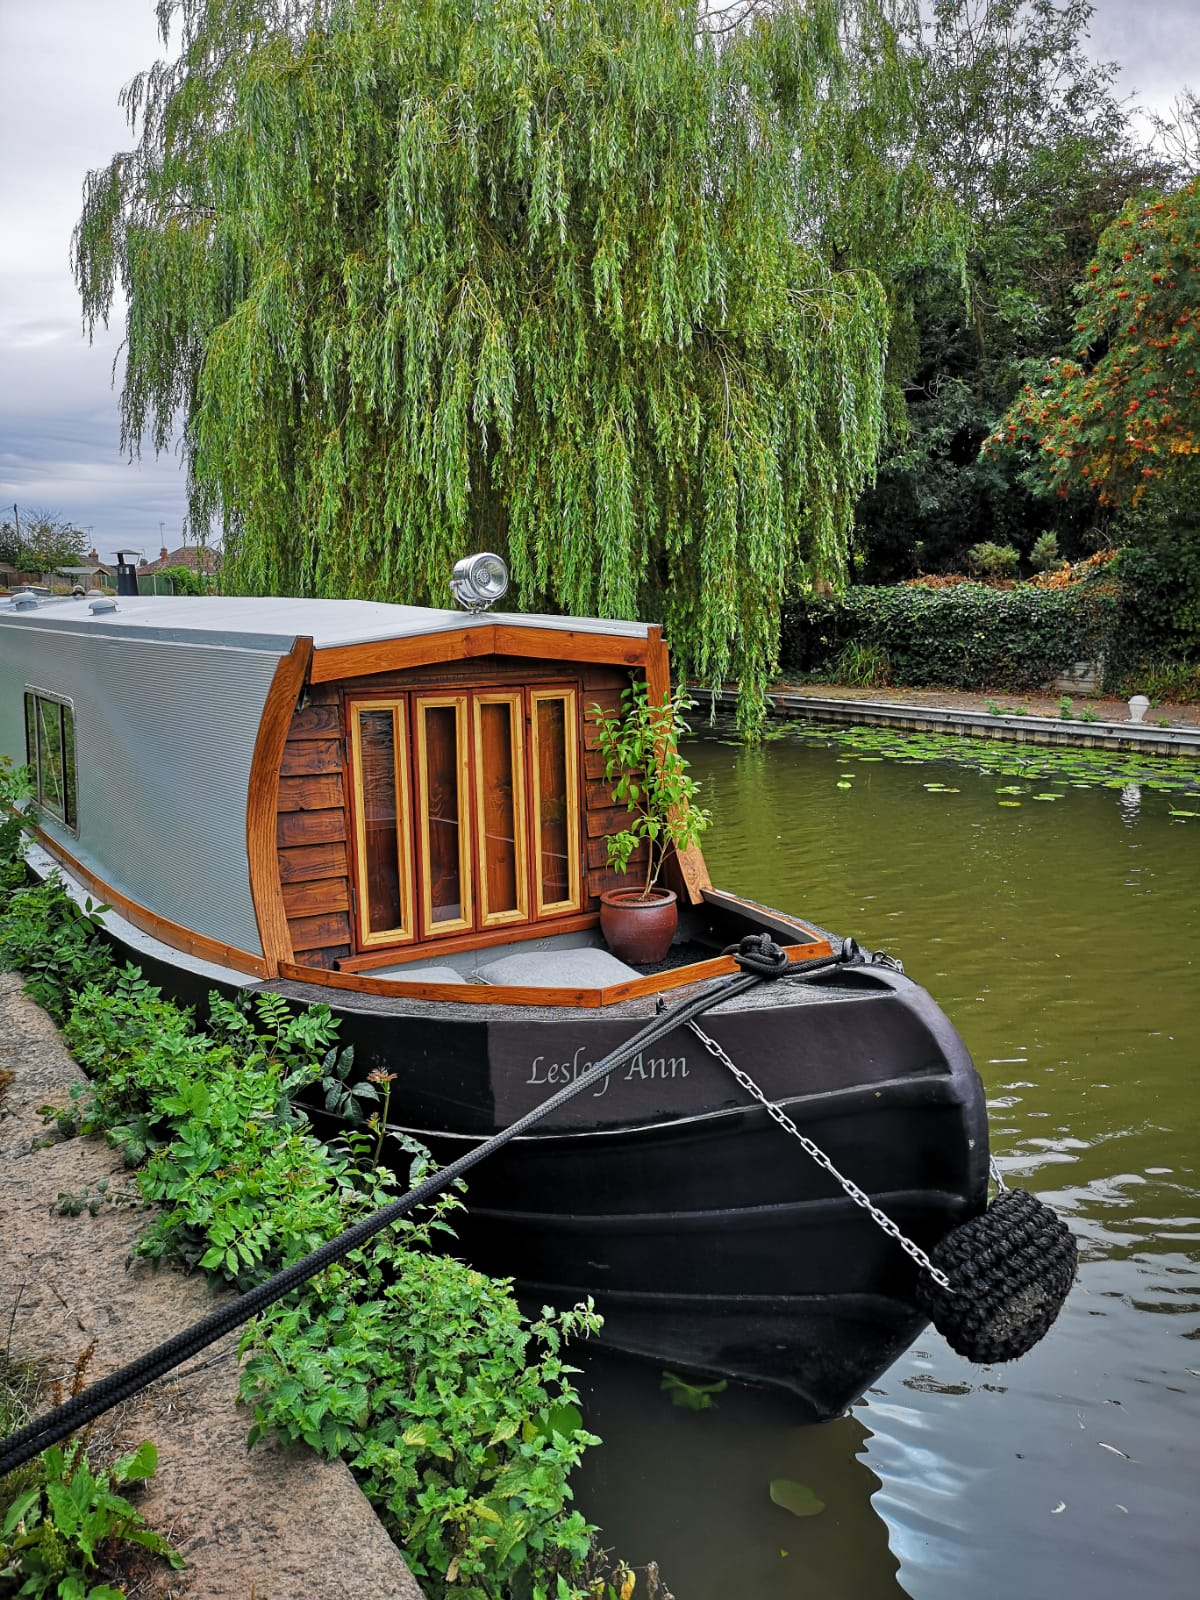 'Boutique Narrowboats' accommodation boat on the canal